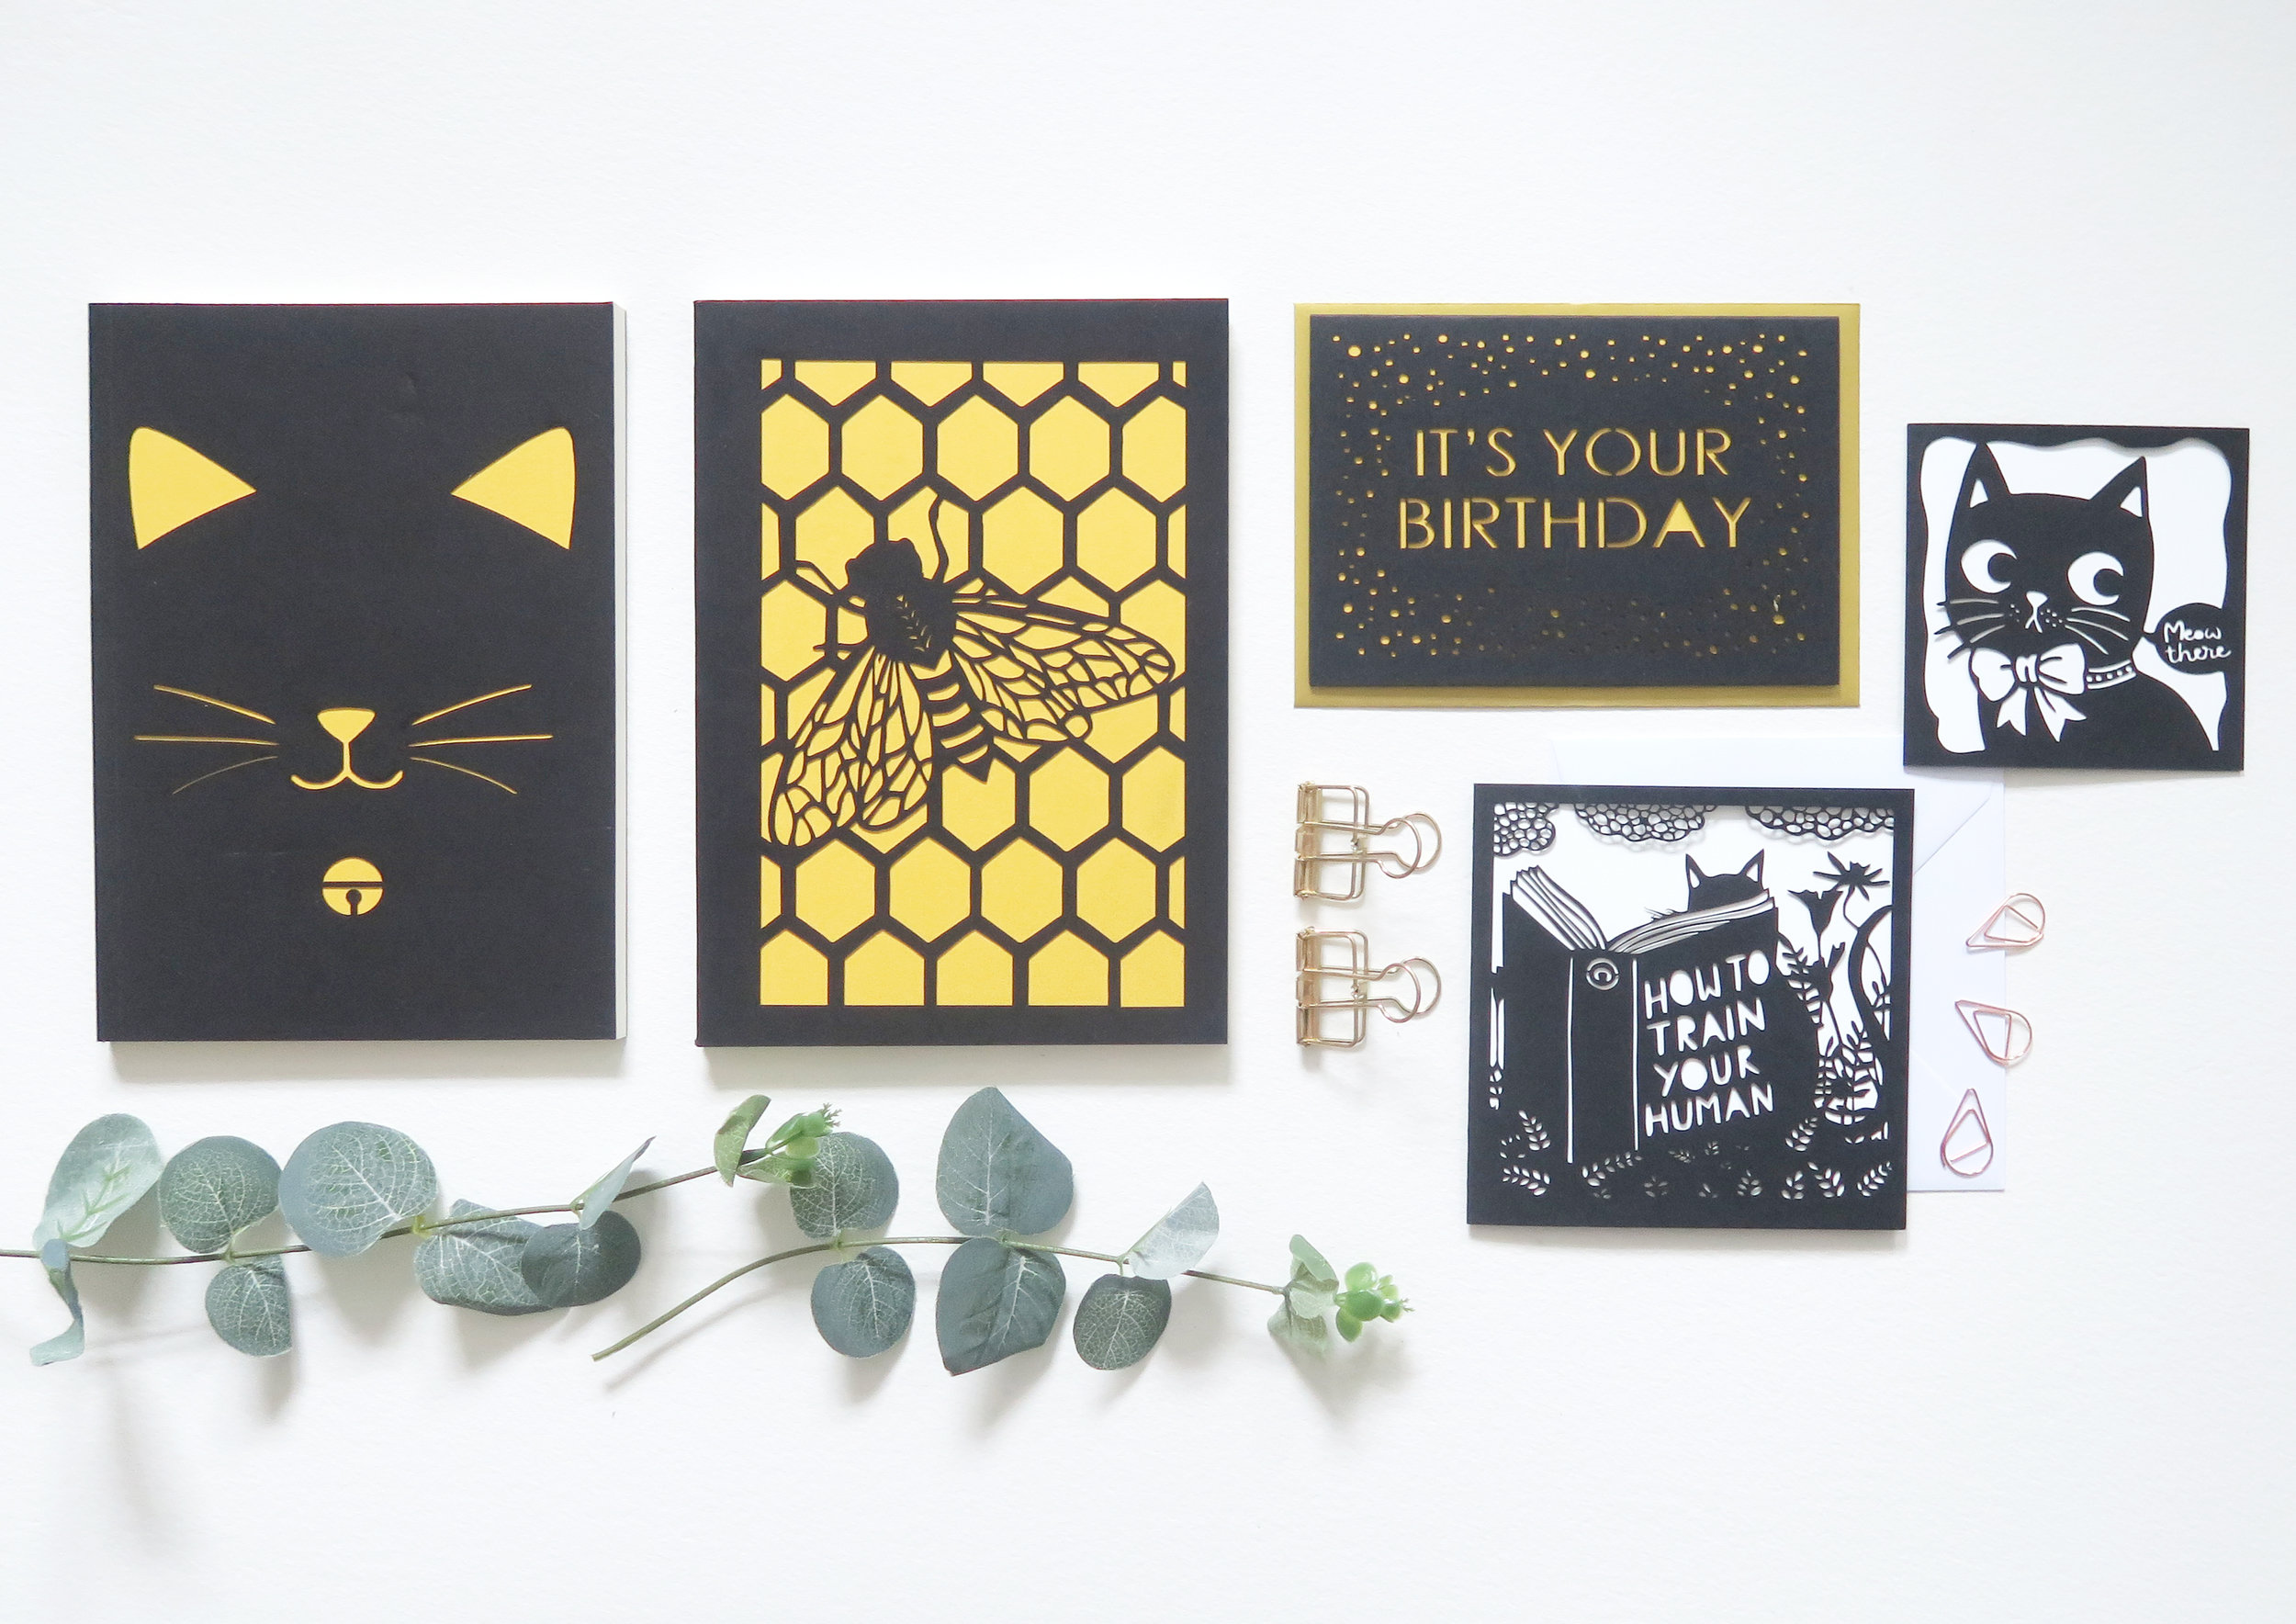 Chau Art - stationery for businesses